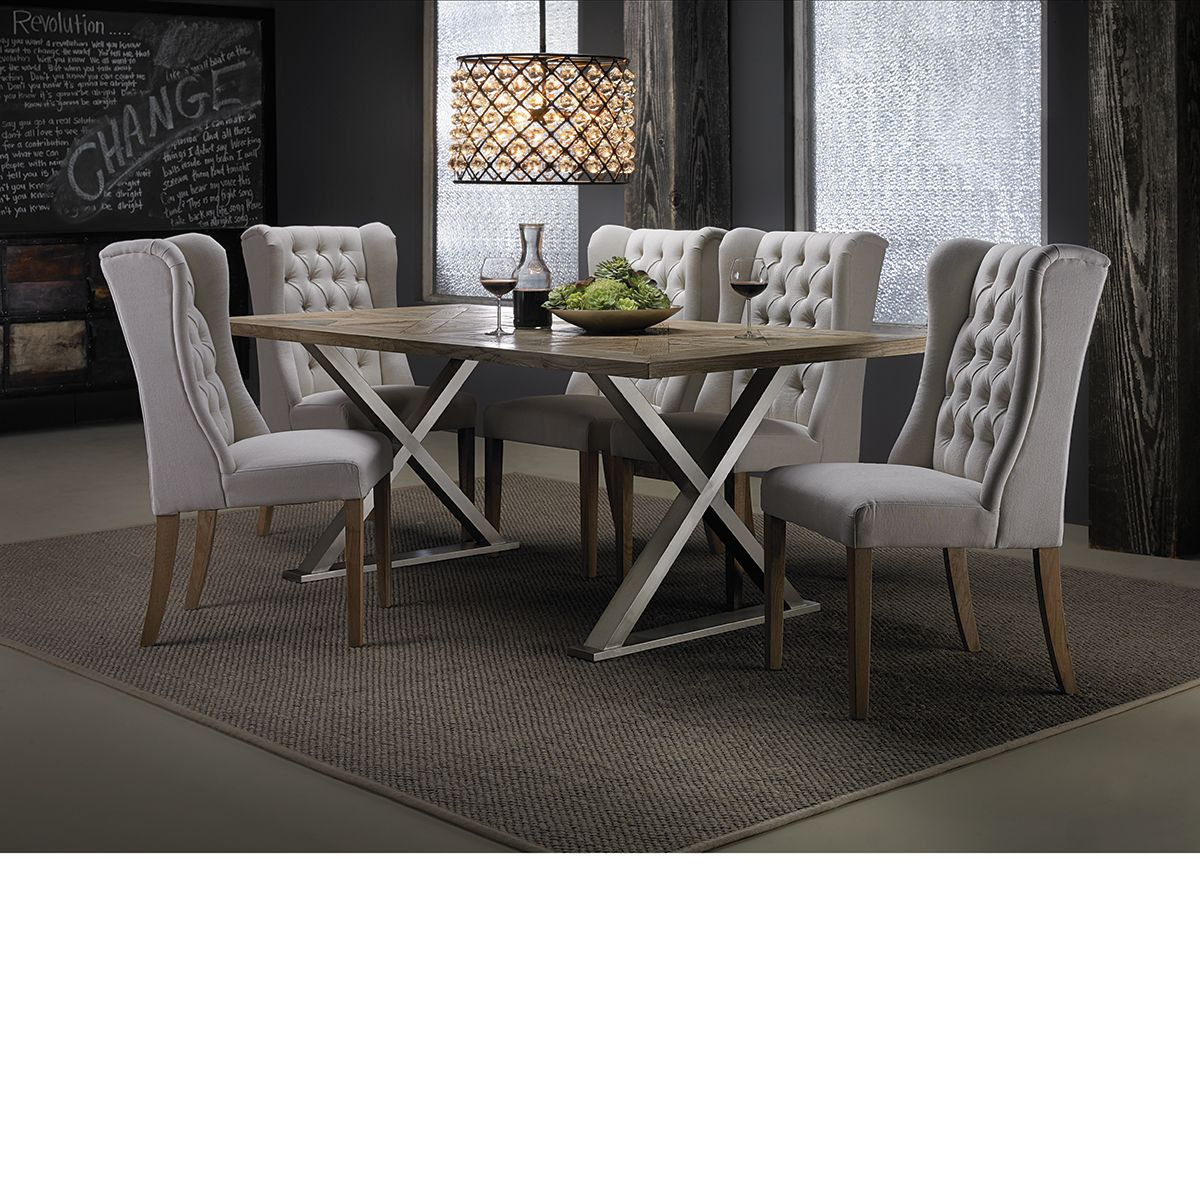 The Dump Furniture Outlet Ogden Dining Table Kitchen Dining